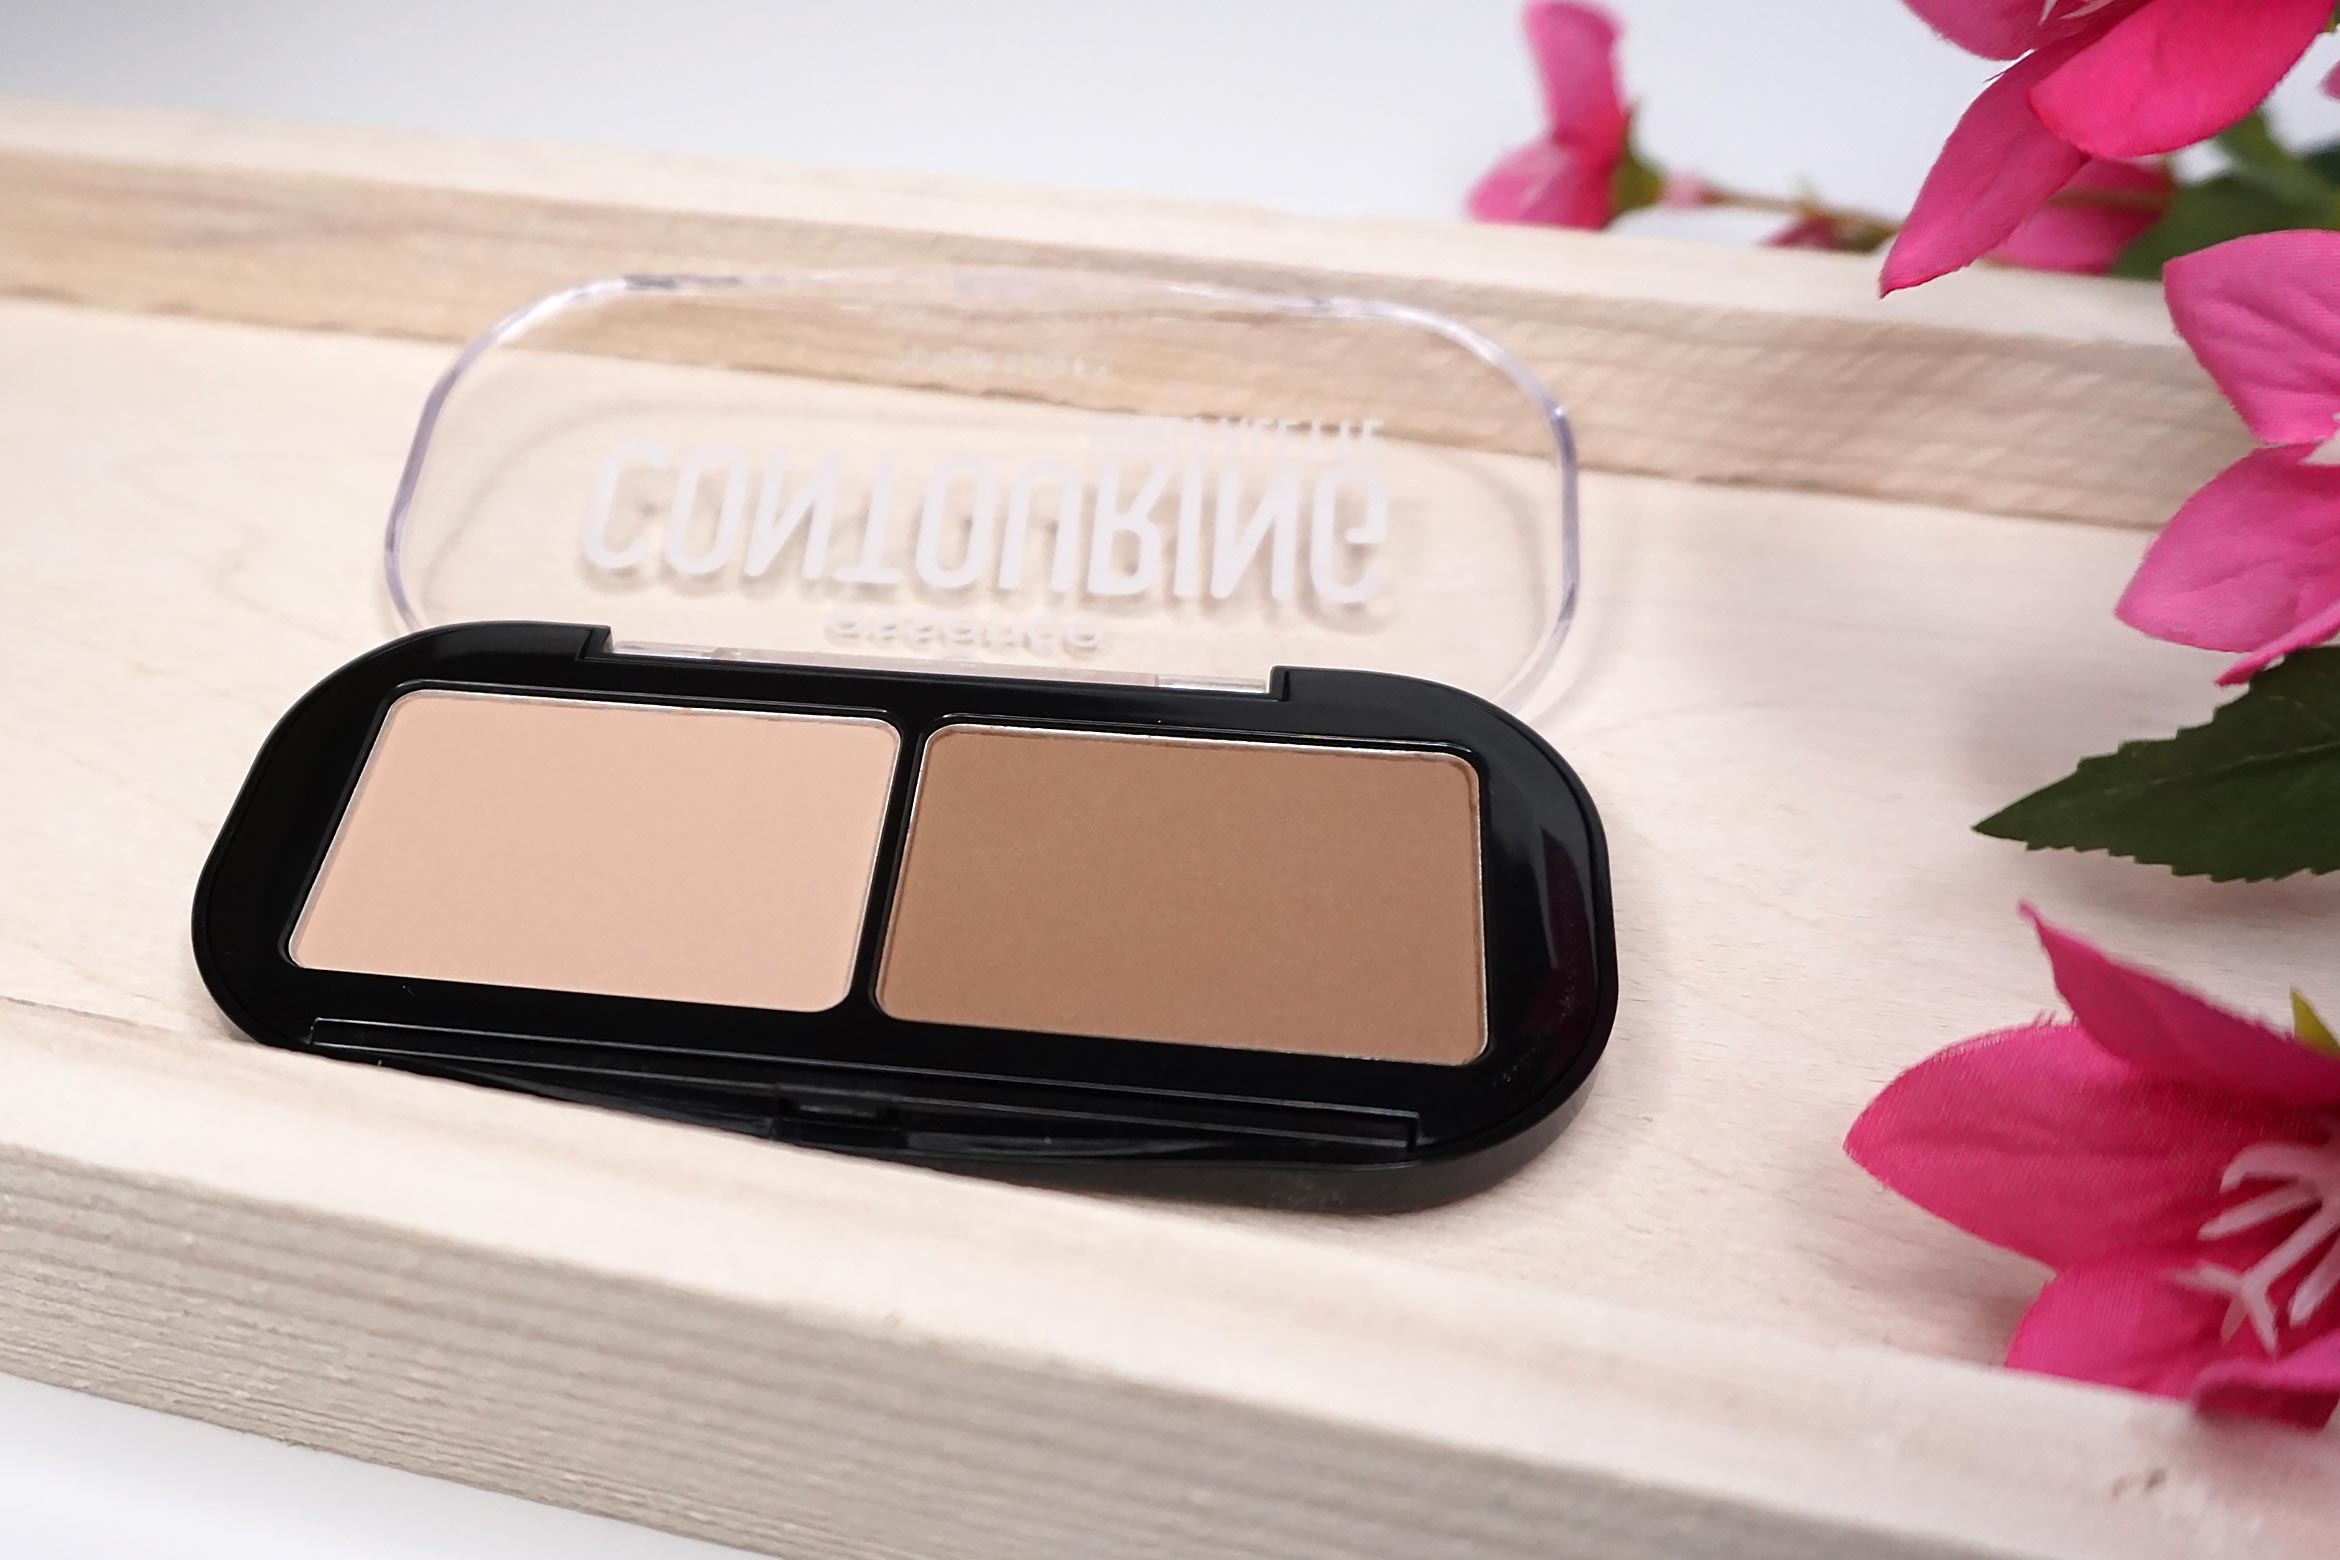 essence-contouring-duo-palette-review